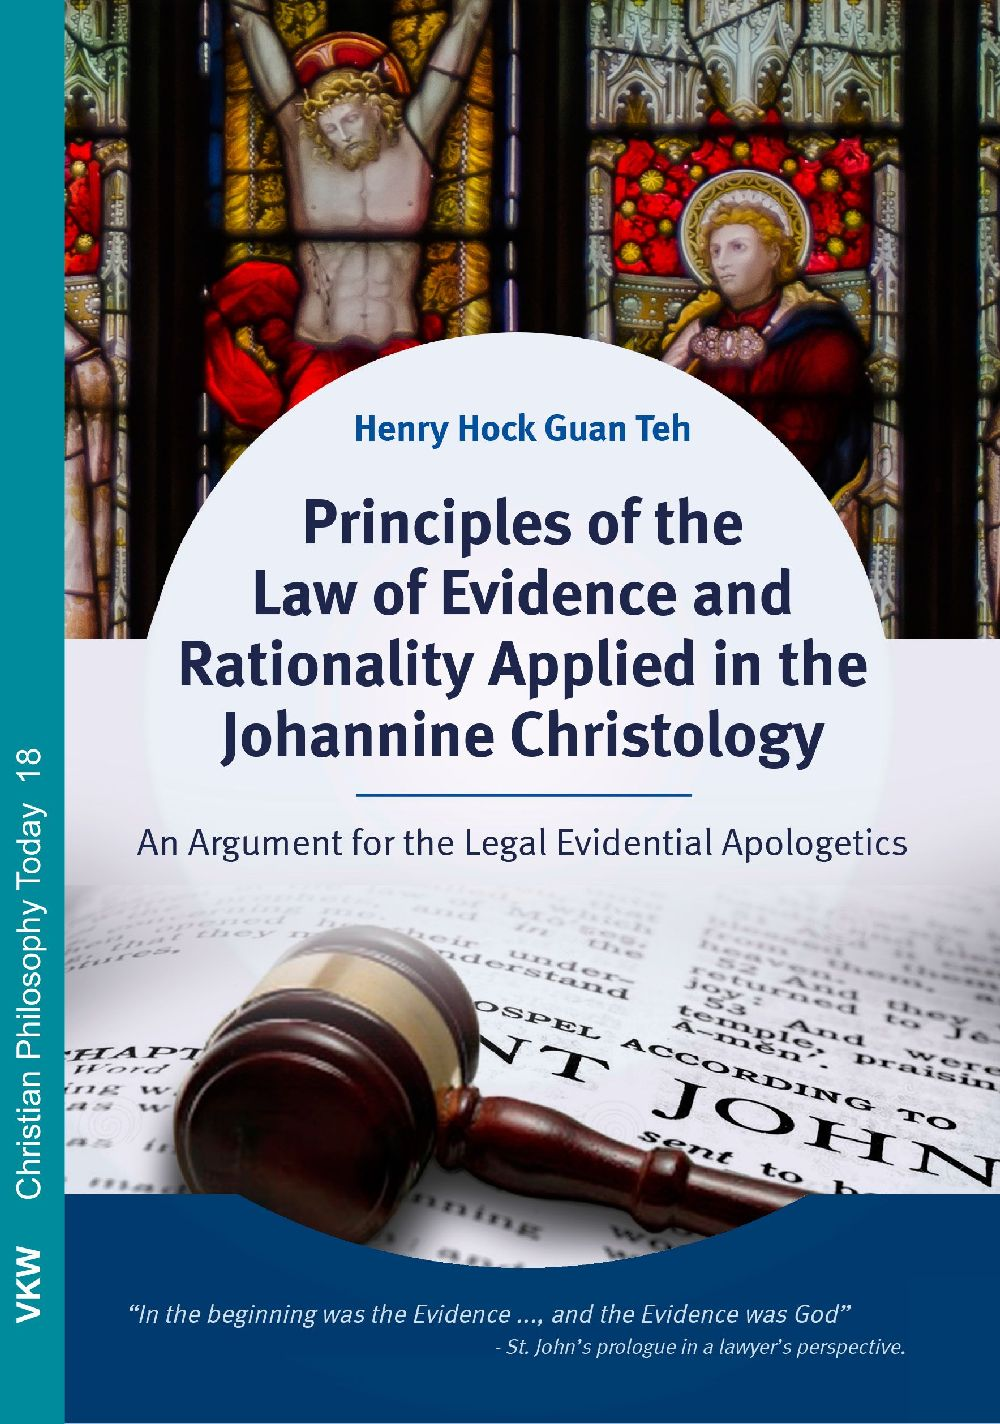 Principles of the Law of Evidence and Rationality Applied in the Johannine Chriy